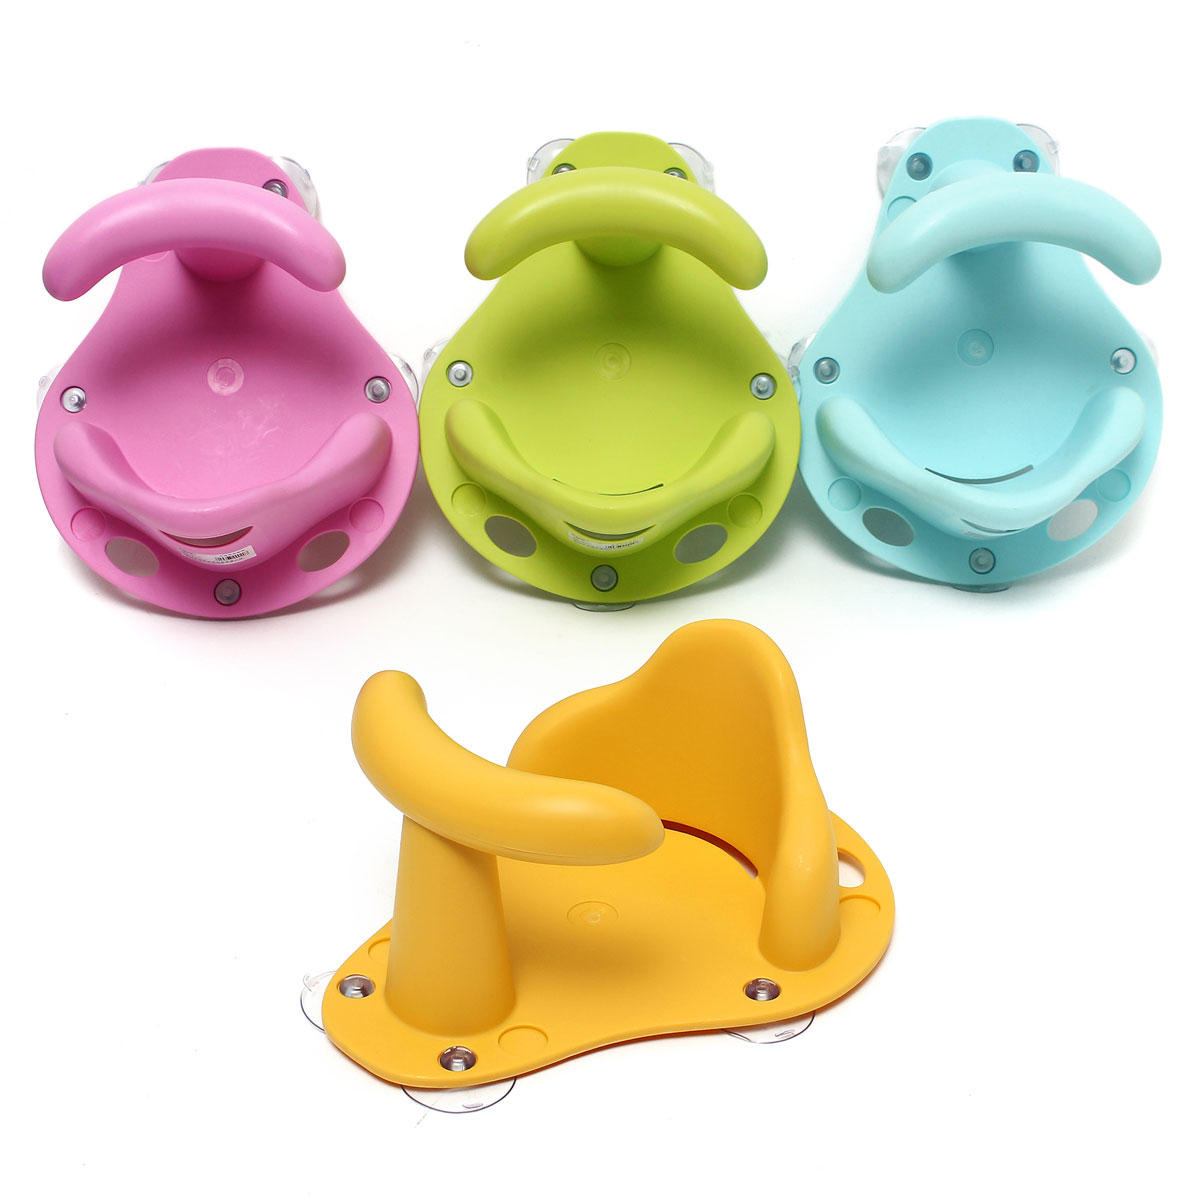 How To Choose A Baby Bath Seat